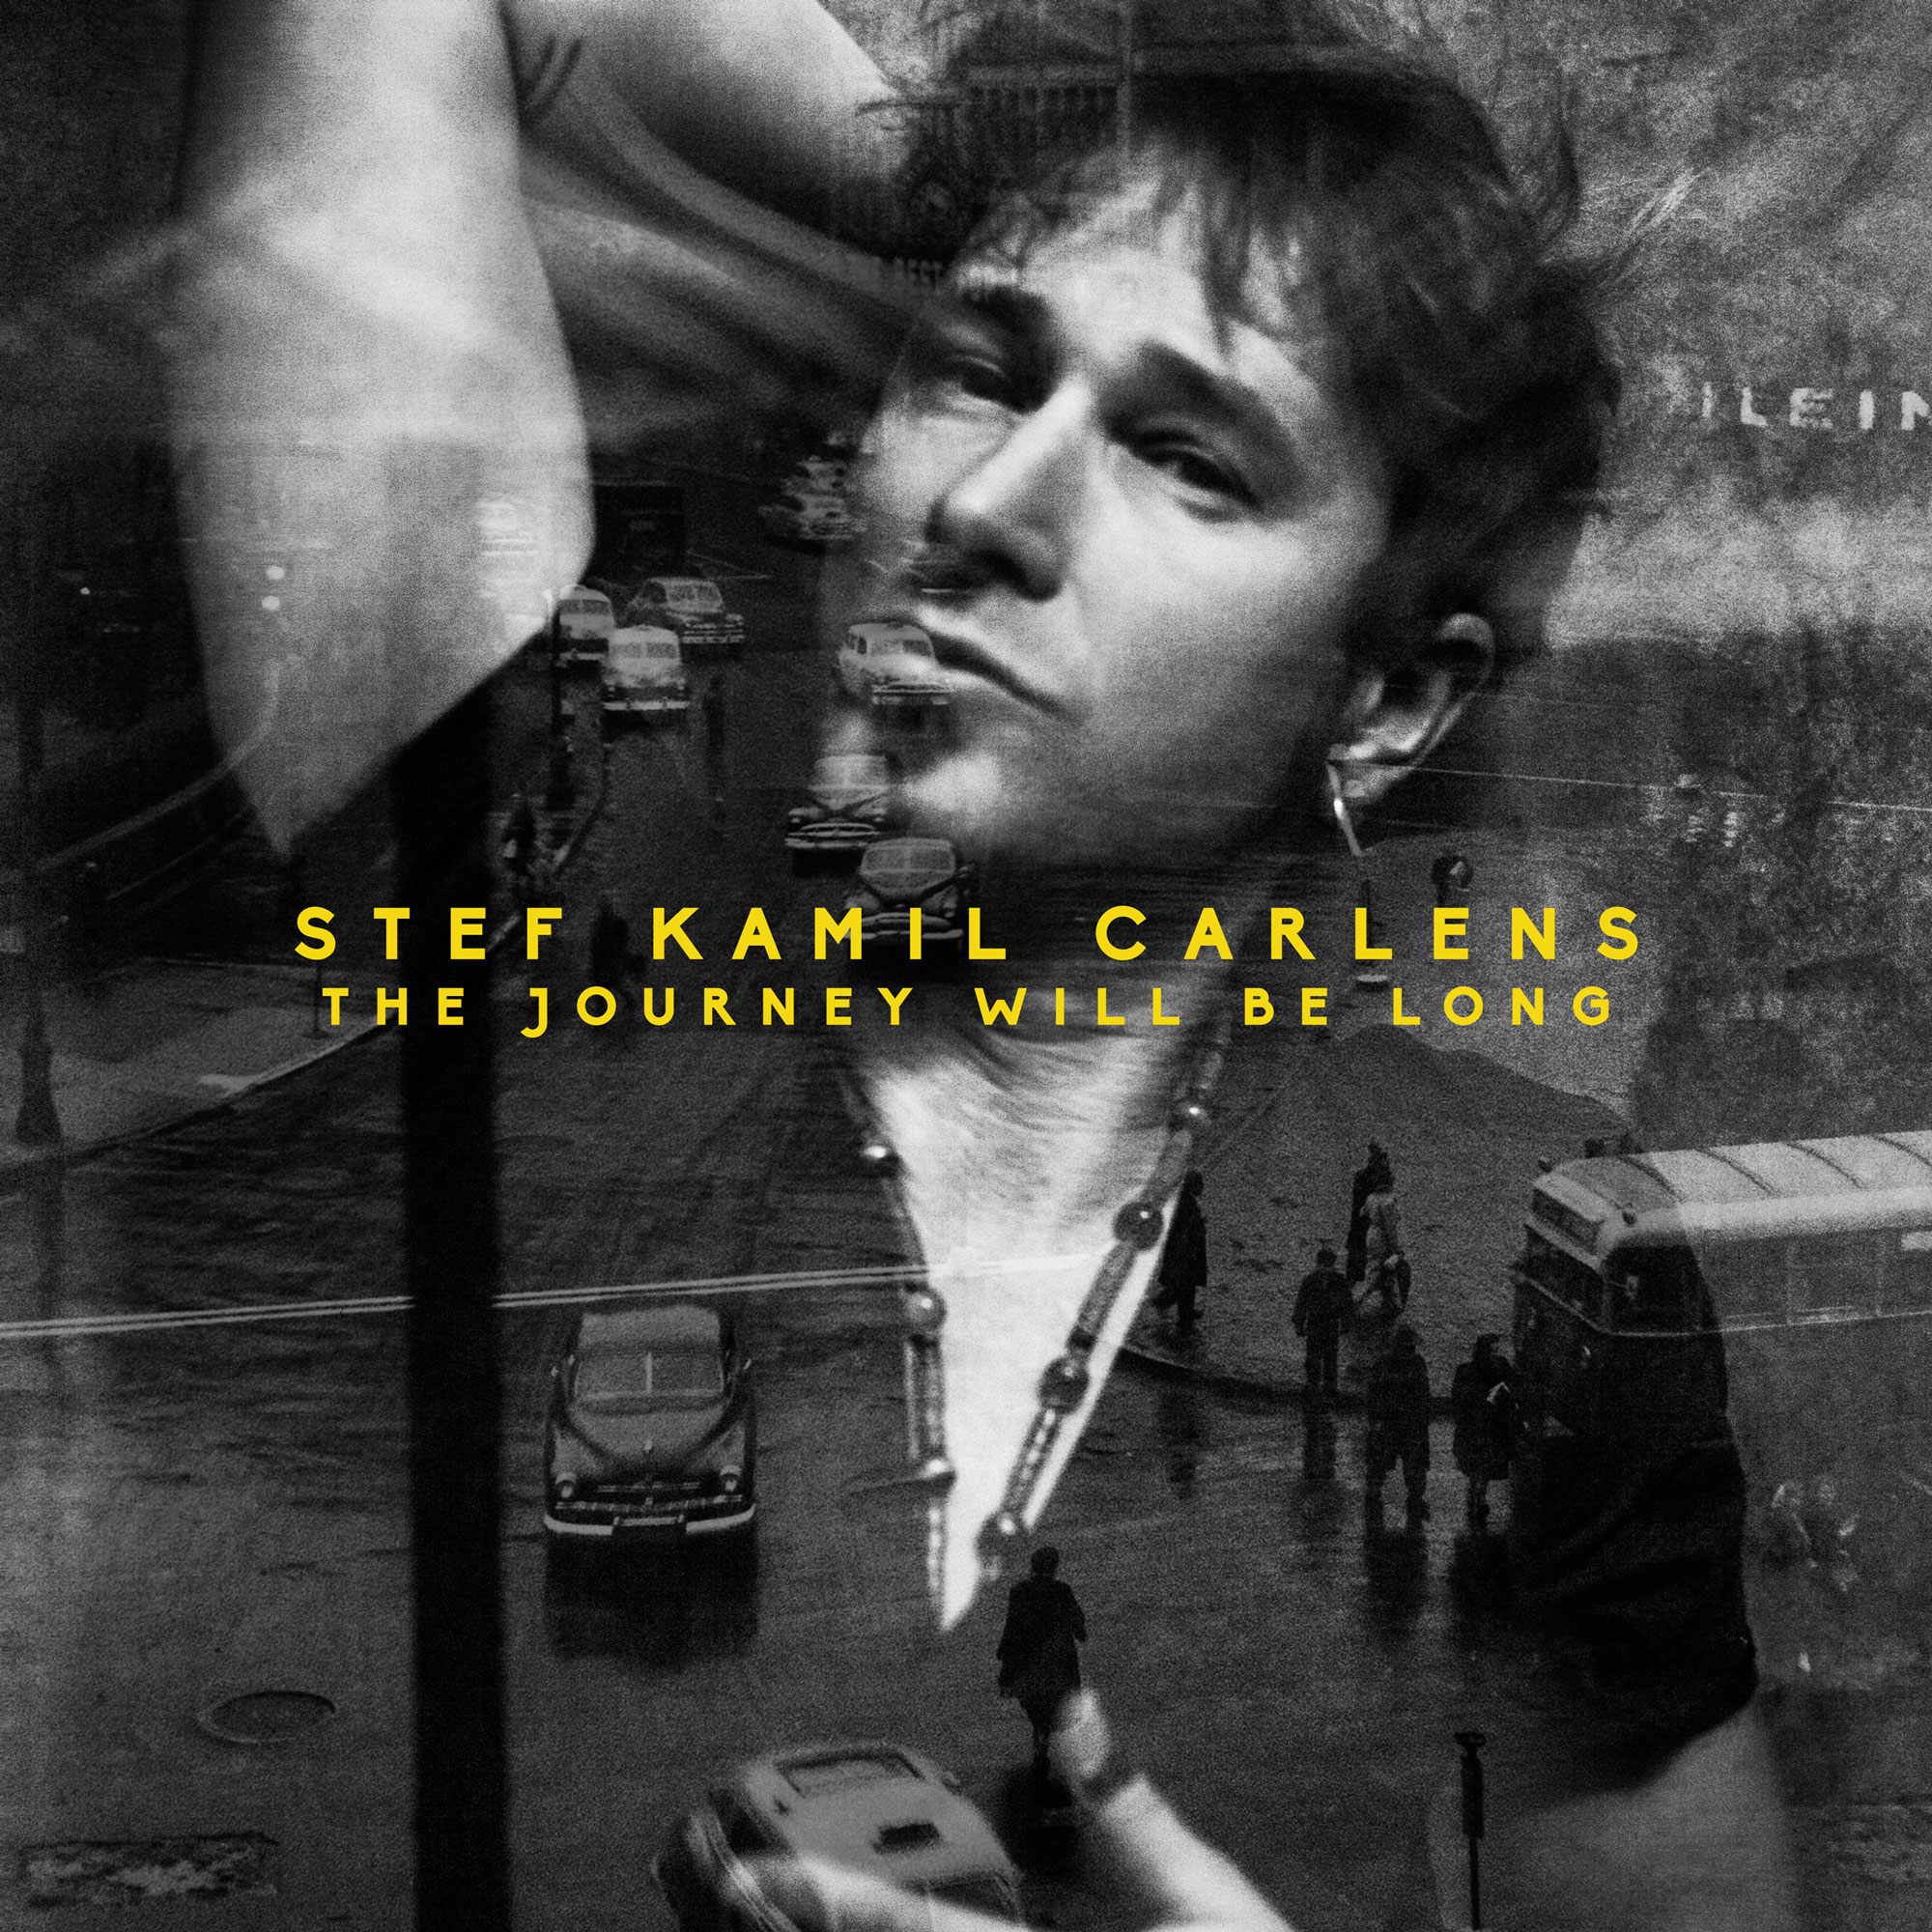 The Journey Will Be Long, Stef Kamil Carlens, Stef Kamil, new album, new single, musician, youtube, videoclip, zita swoon, deus